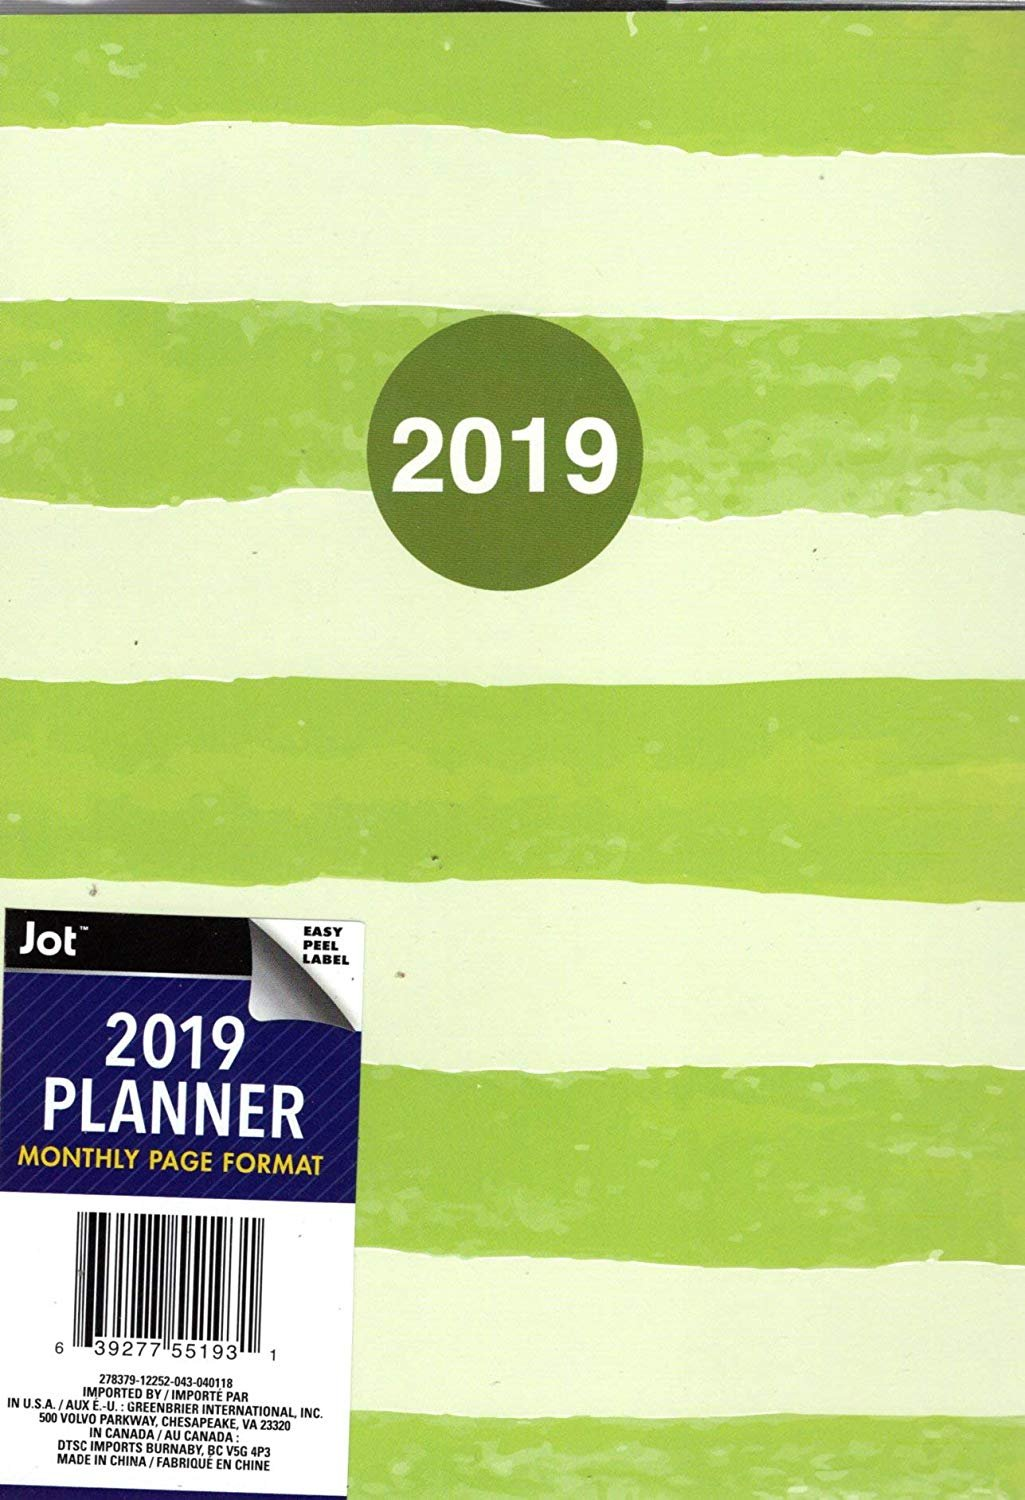 2019 Personal Monthly Planner/Calendar / Organizer - Monthly Page Format - (Green Stripes)